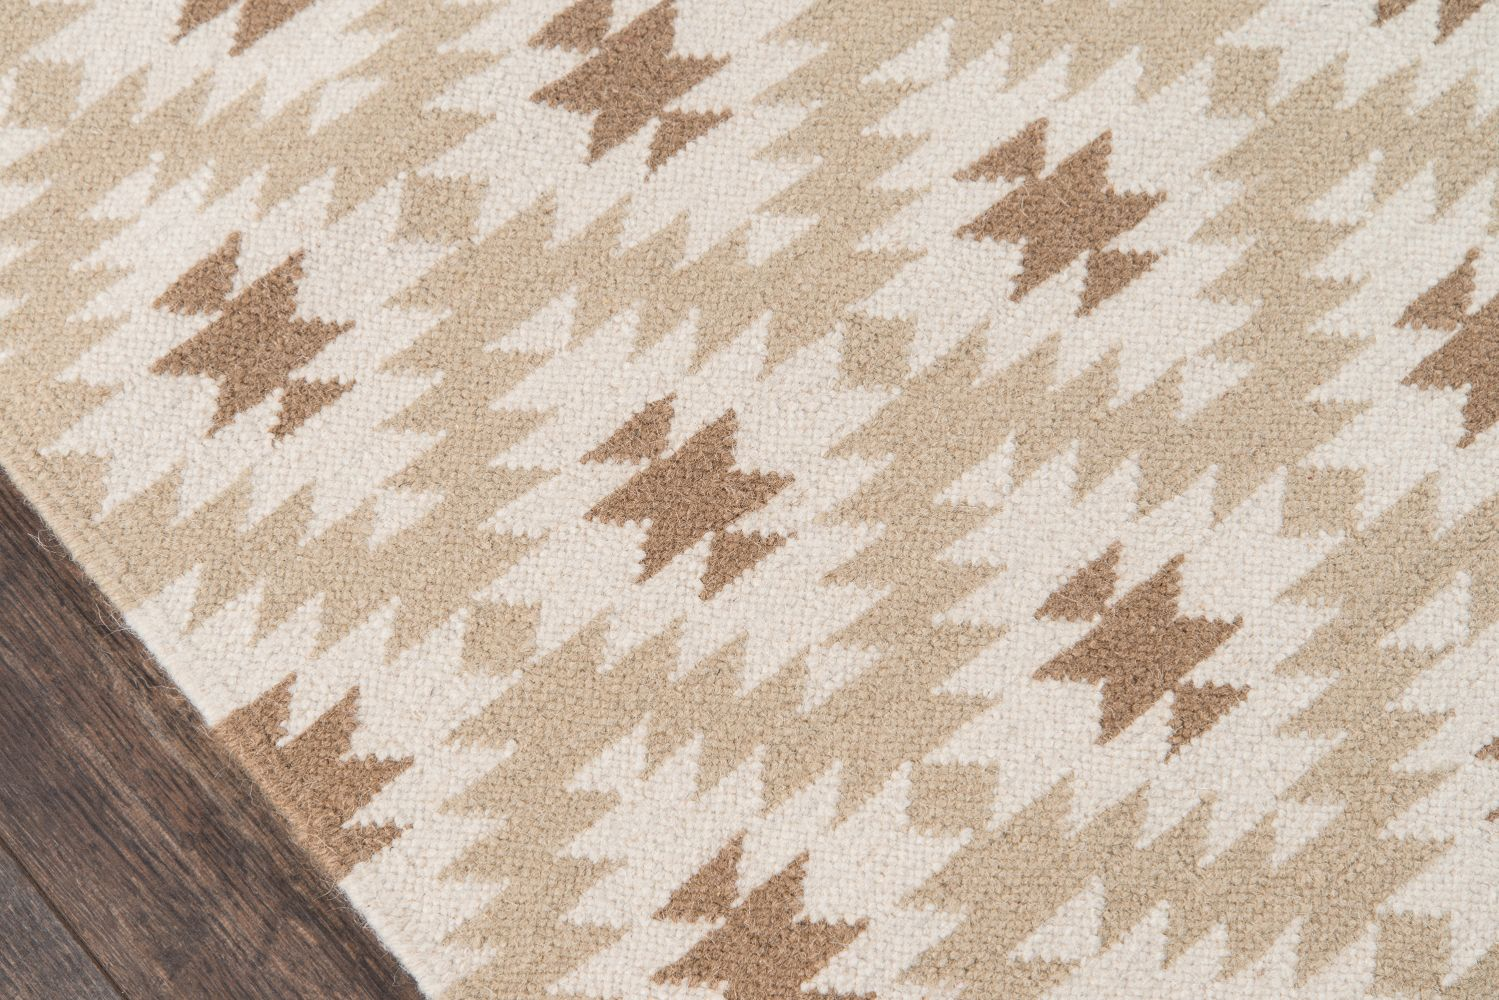 Erin Gates Thompson Tho10 Newbury Beige 2'3″ x 8'0″ Runner THOMPTHO10BGE2380